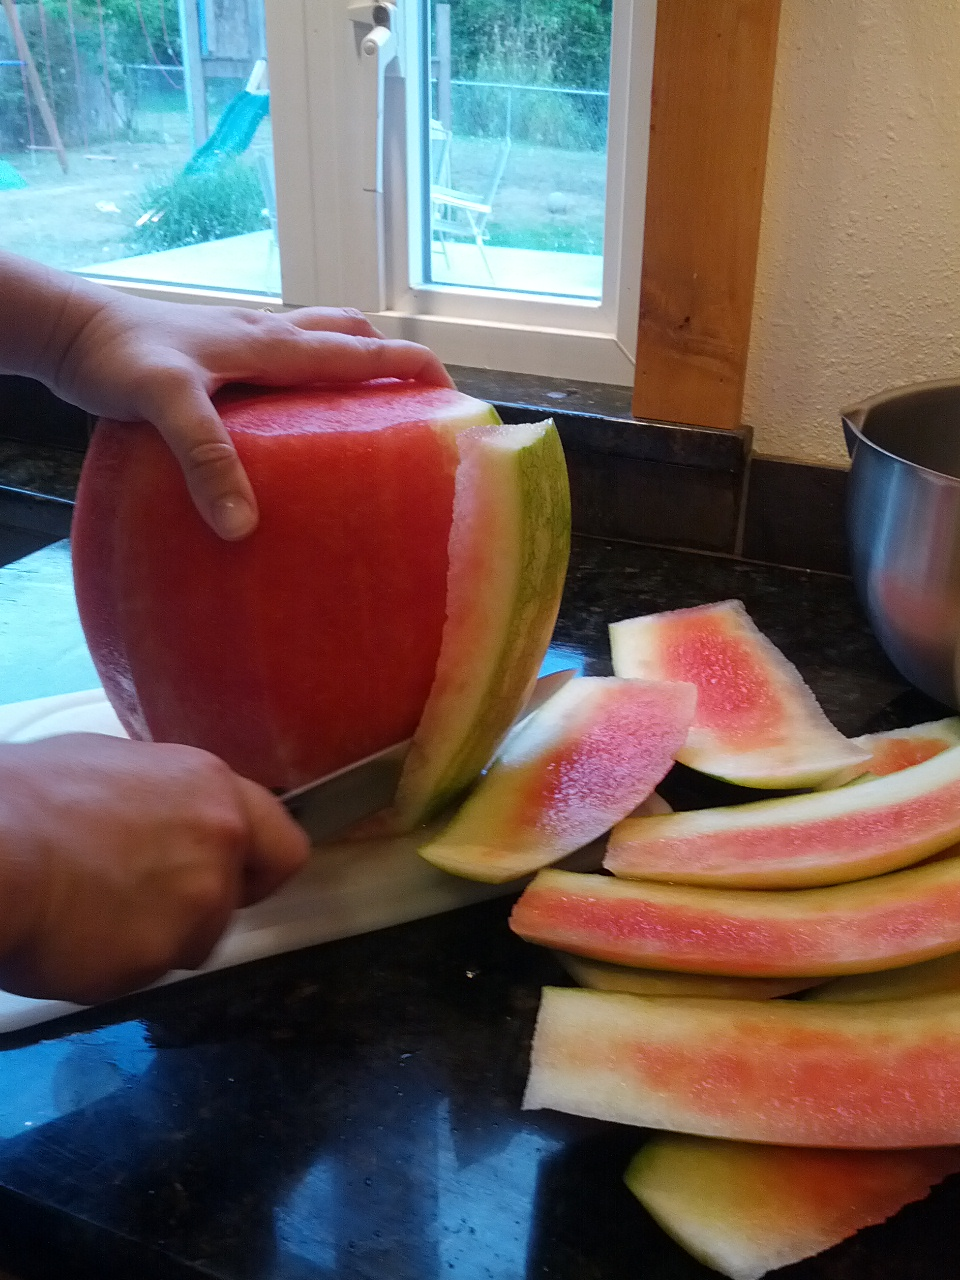 How to Peel Watermelon